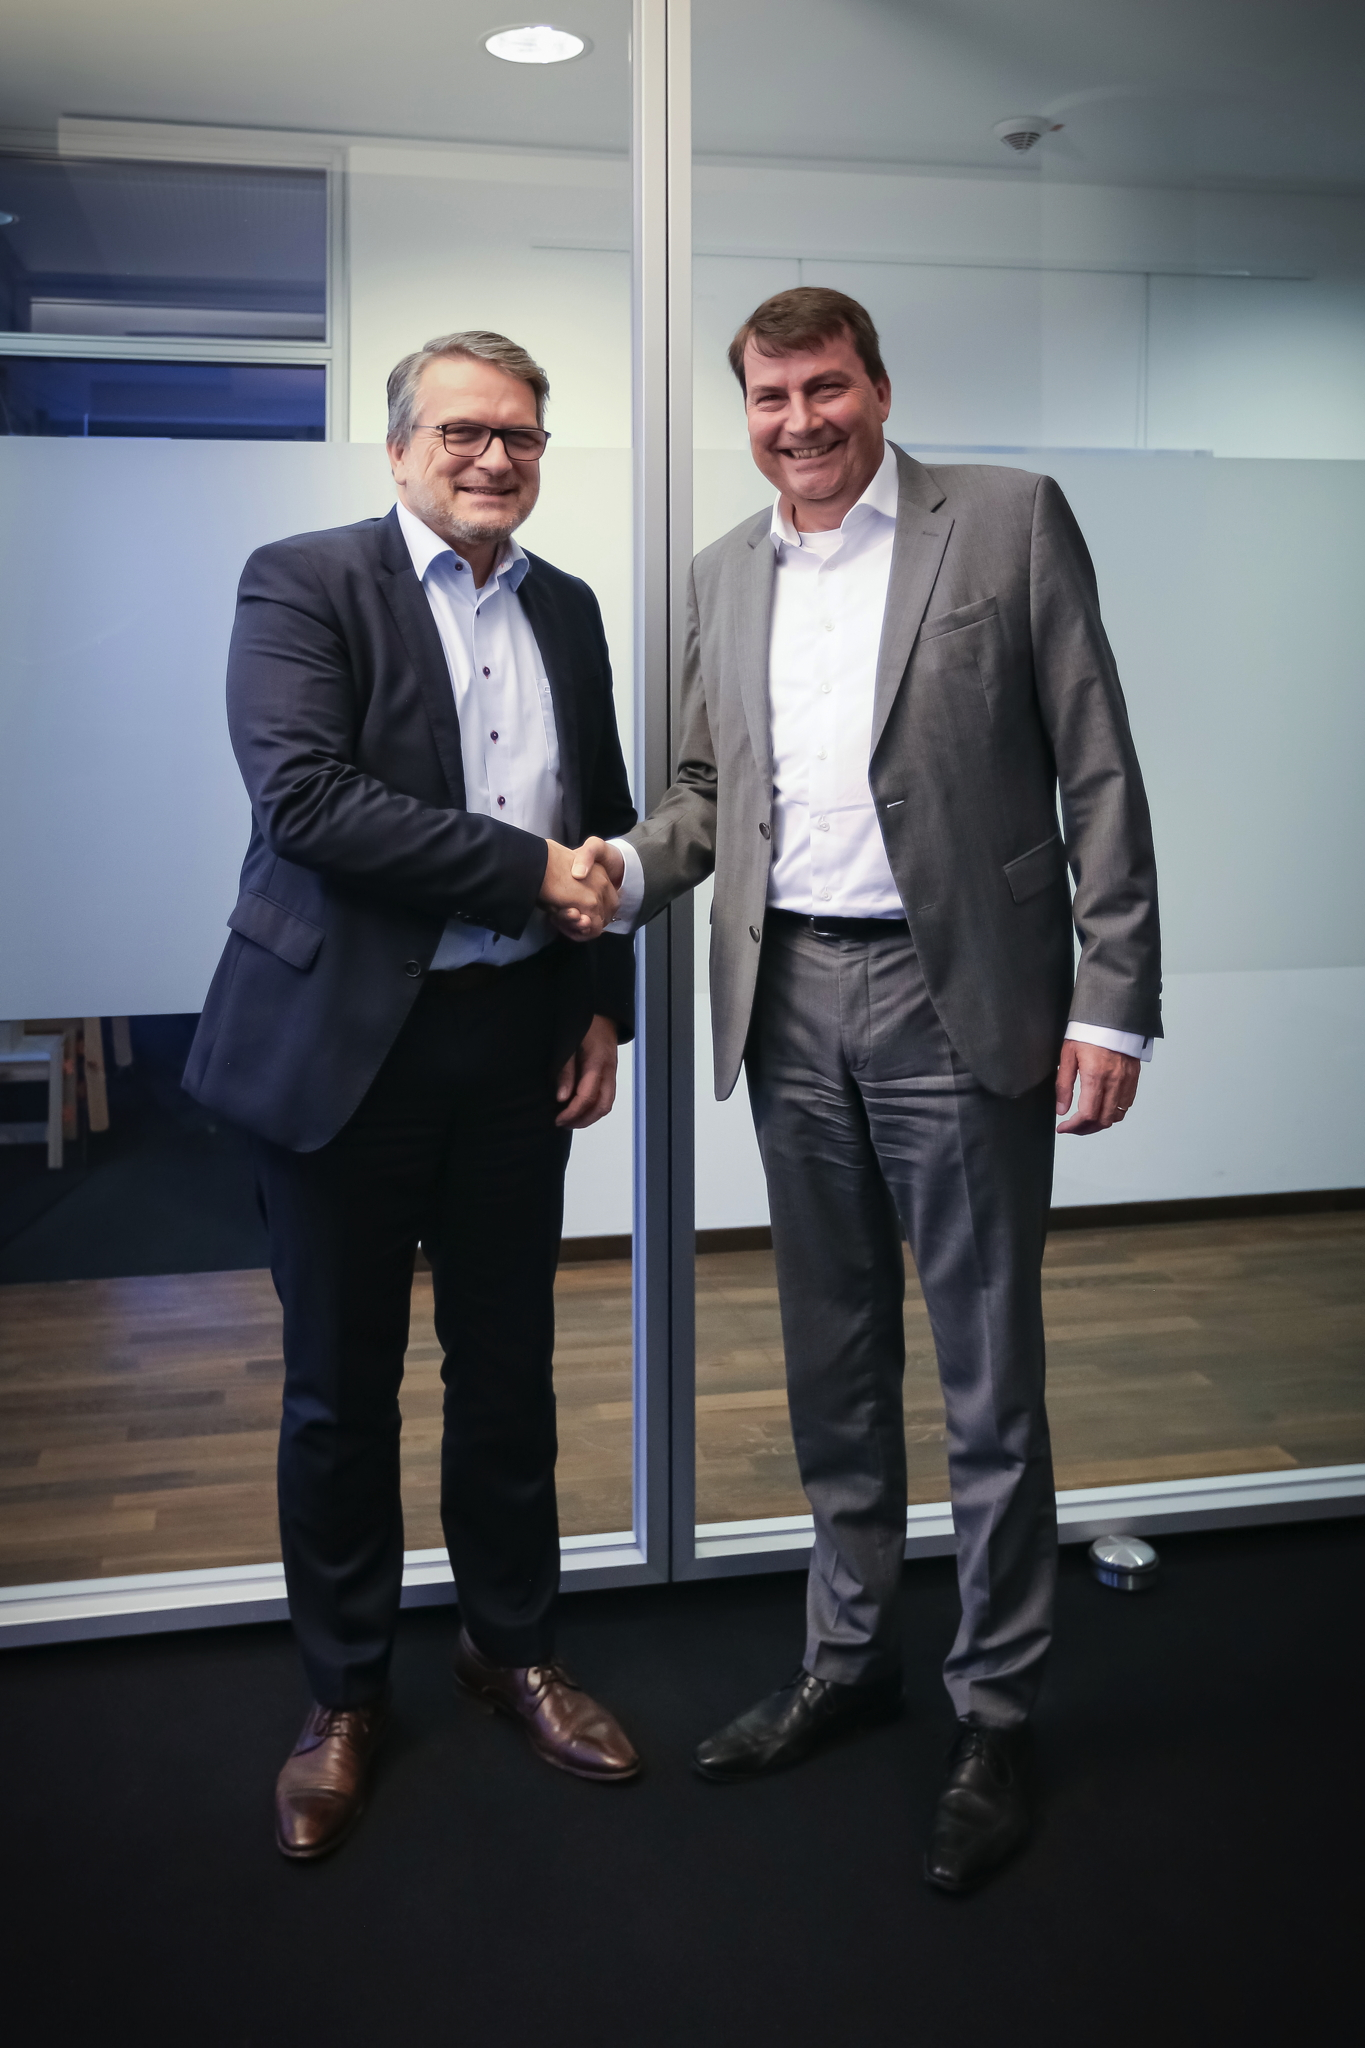 F. l. t. r.: Thomas Wildt (CEO Hennecke Group), Dr. Christof Bönsch (CEO Frimo Group) (Source: obs/Hennecke Group Frimo Group)